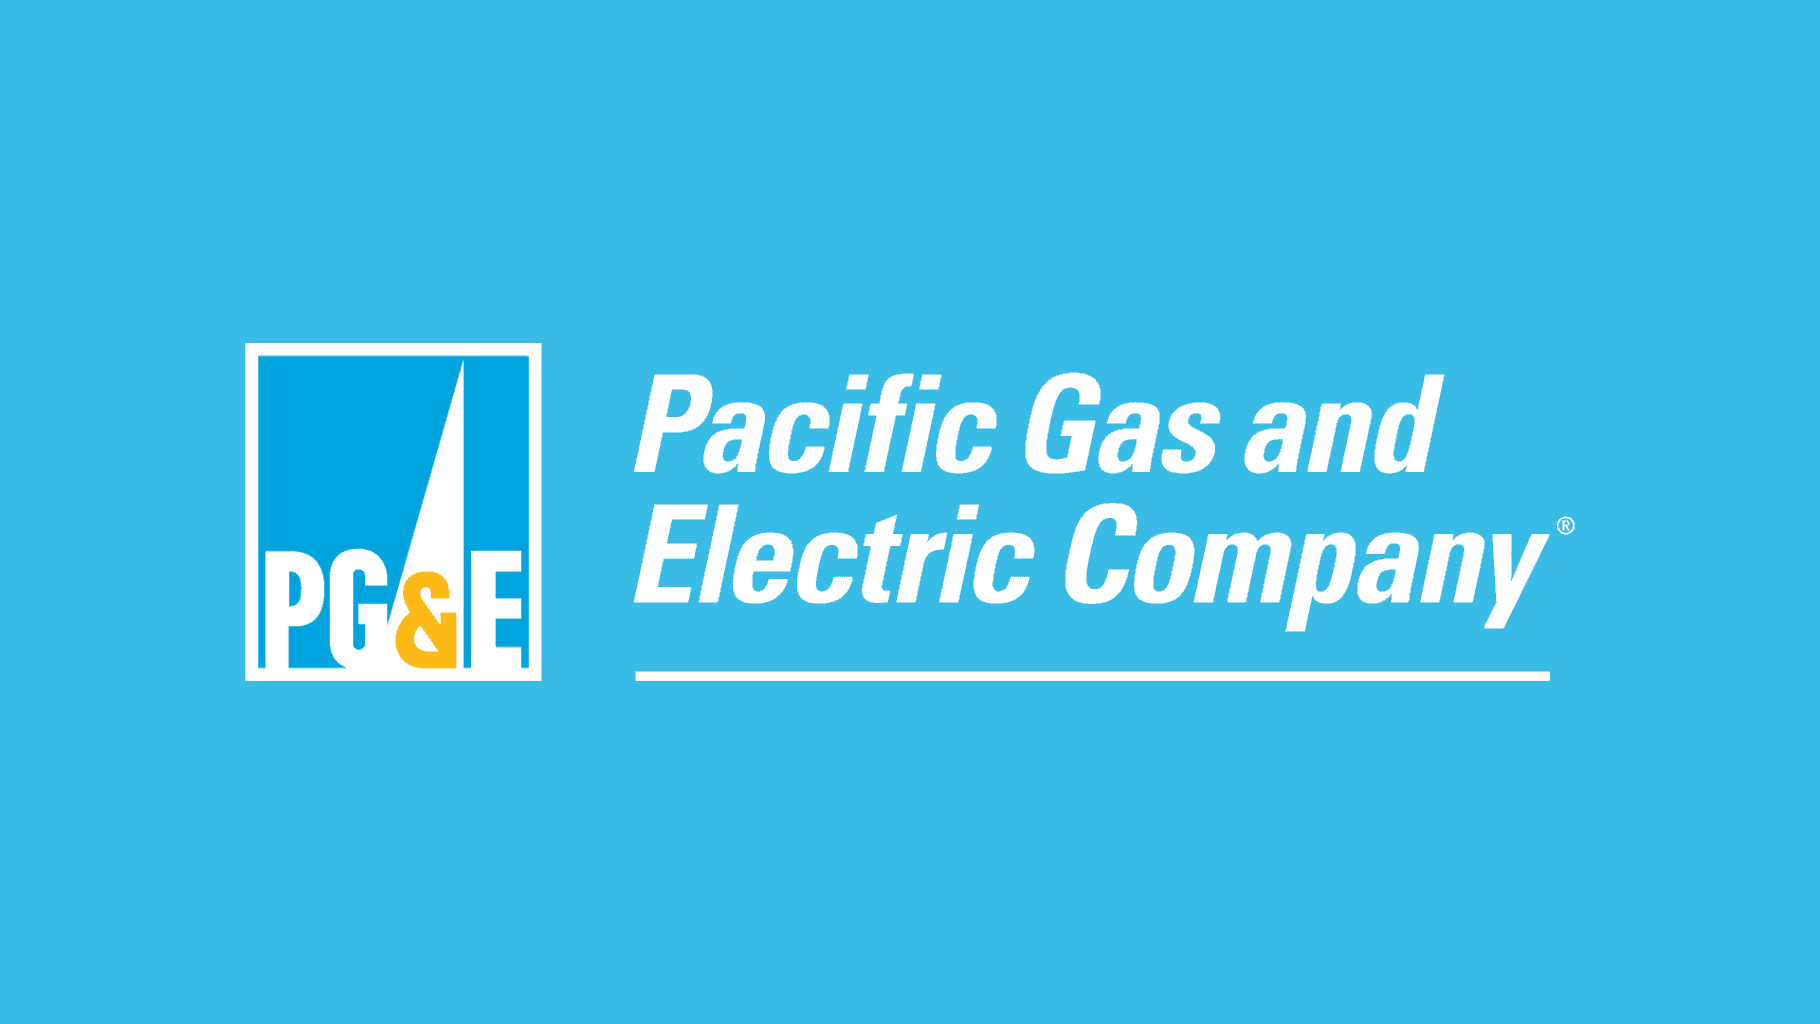 PG&E Corporation (PCG) Will Not Compensate for Northern California Blackout